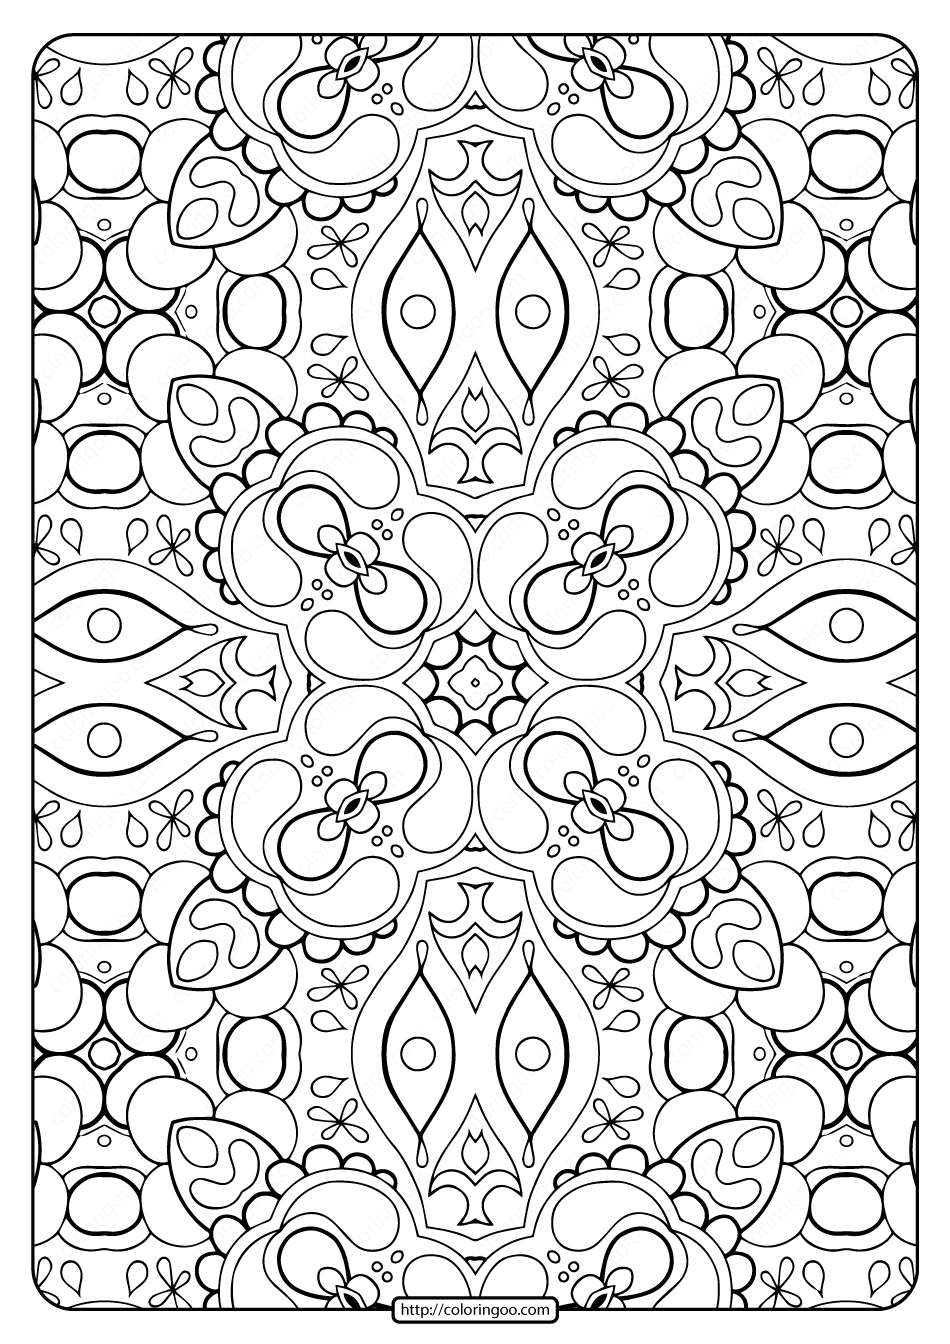 printable pictures to color for adults free printable coloring pages for adults advanced printable to for pictures adults color